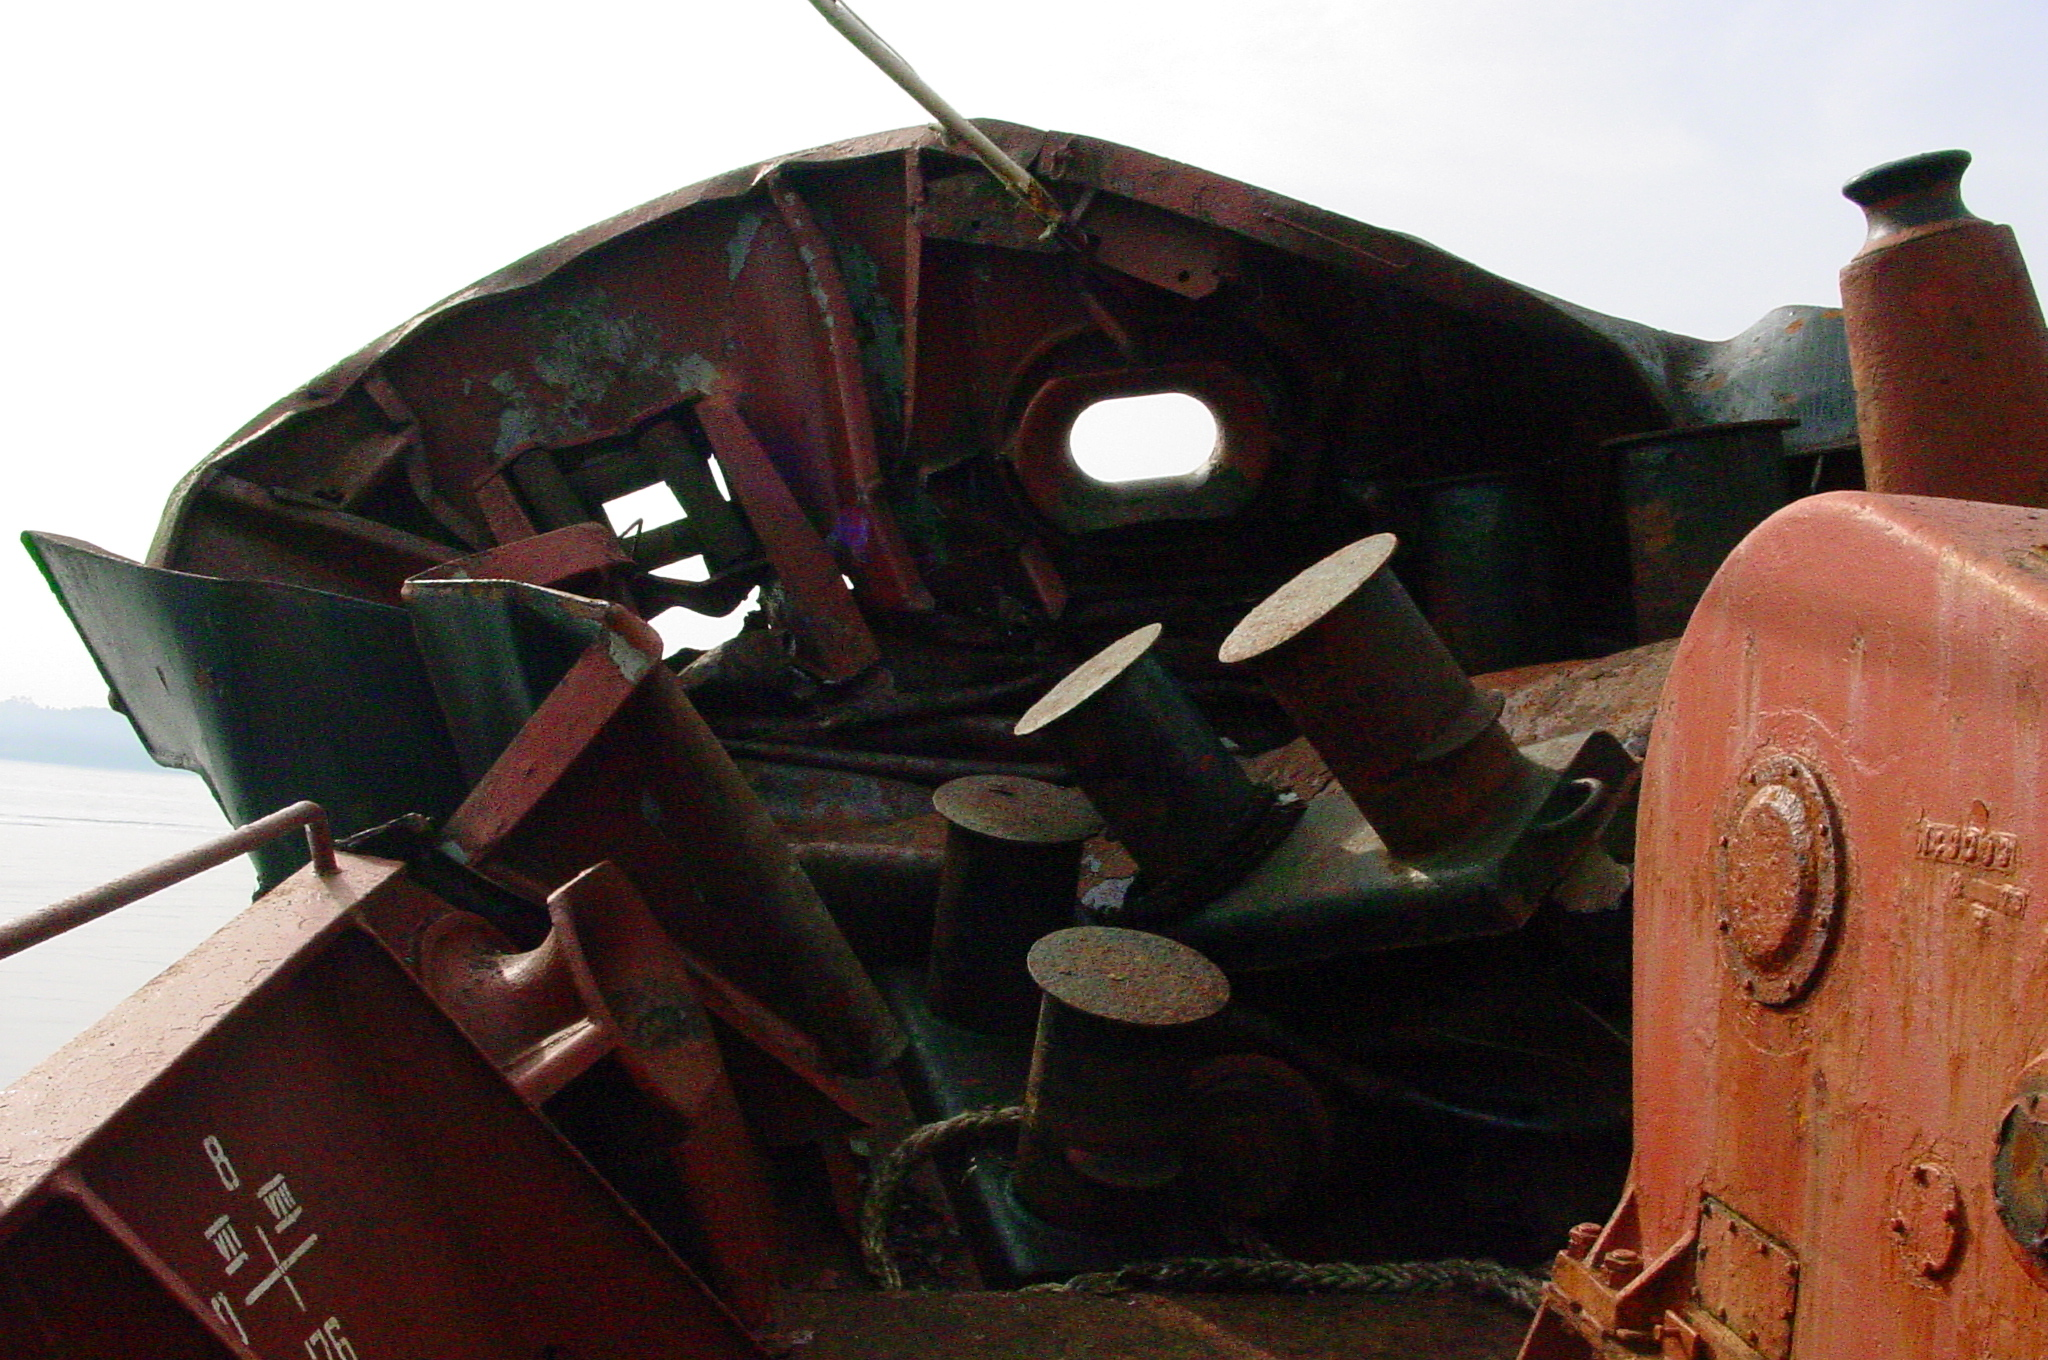 HULL AND MACHINERY SURVEY